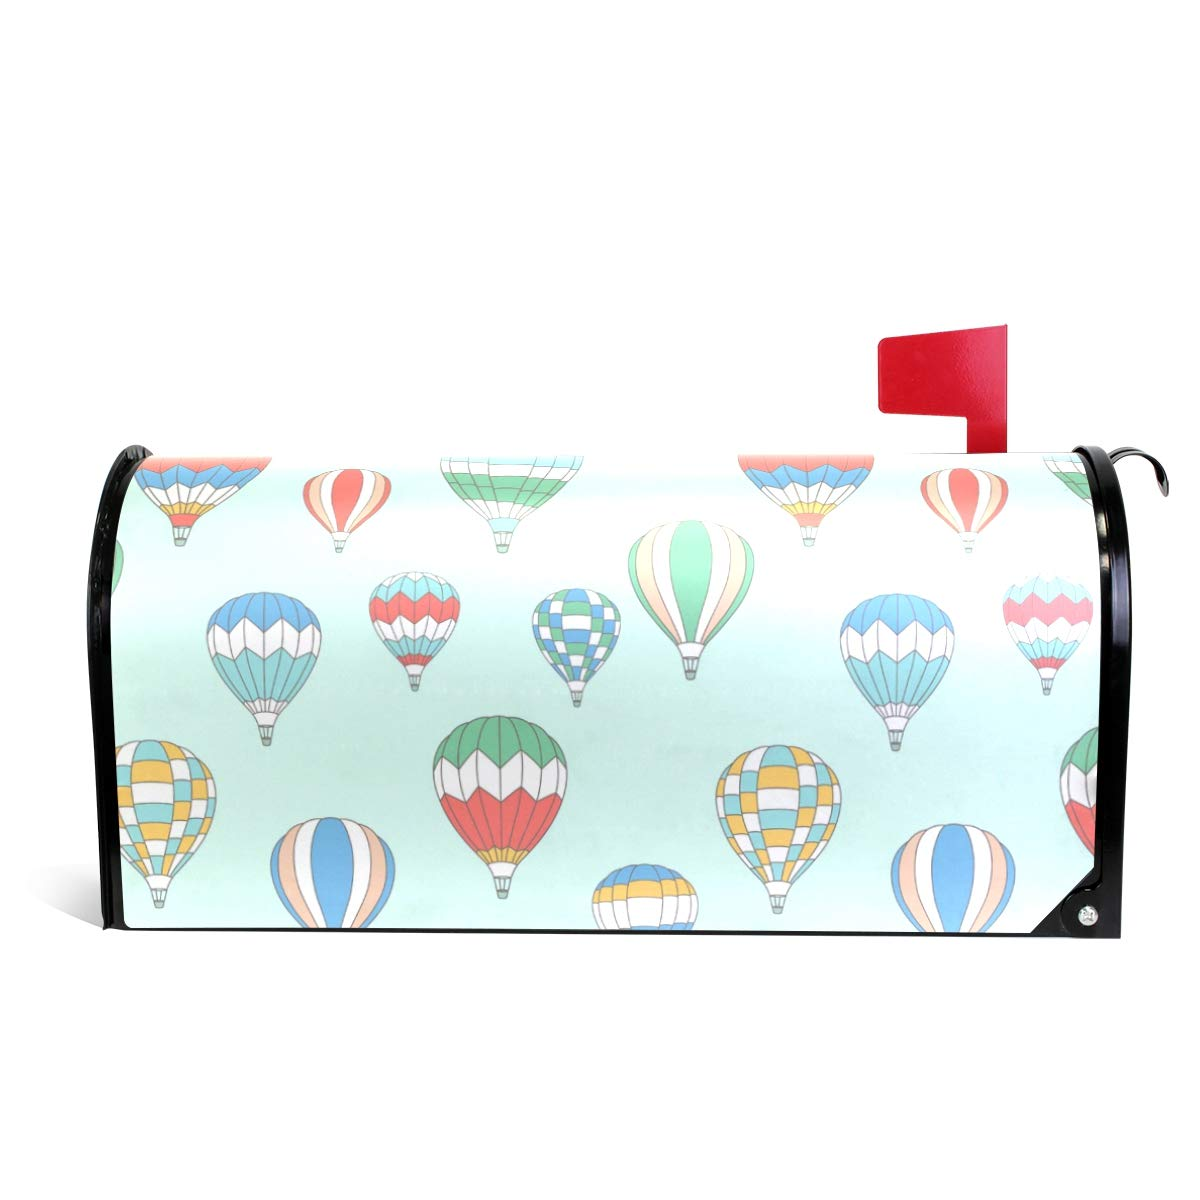 LORVIES Hot Air Ballons Pattern Magnetic Mailbox Cover Oversized 25.5 x 18 Inch